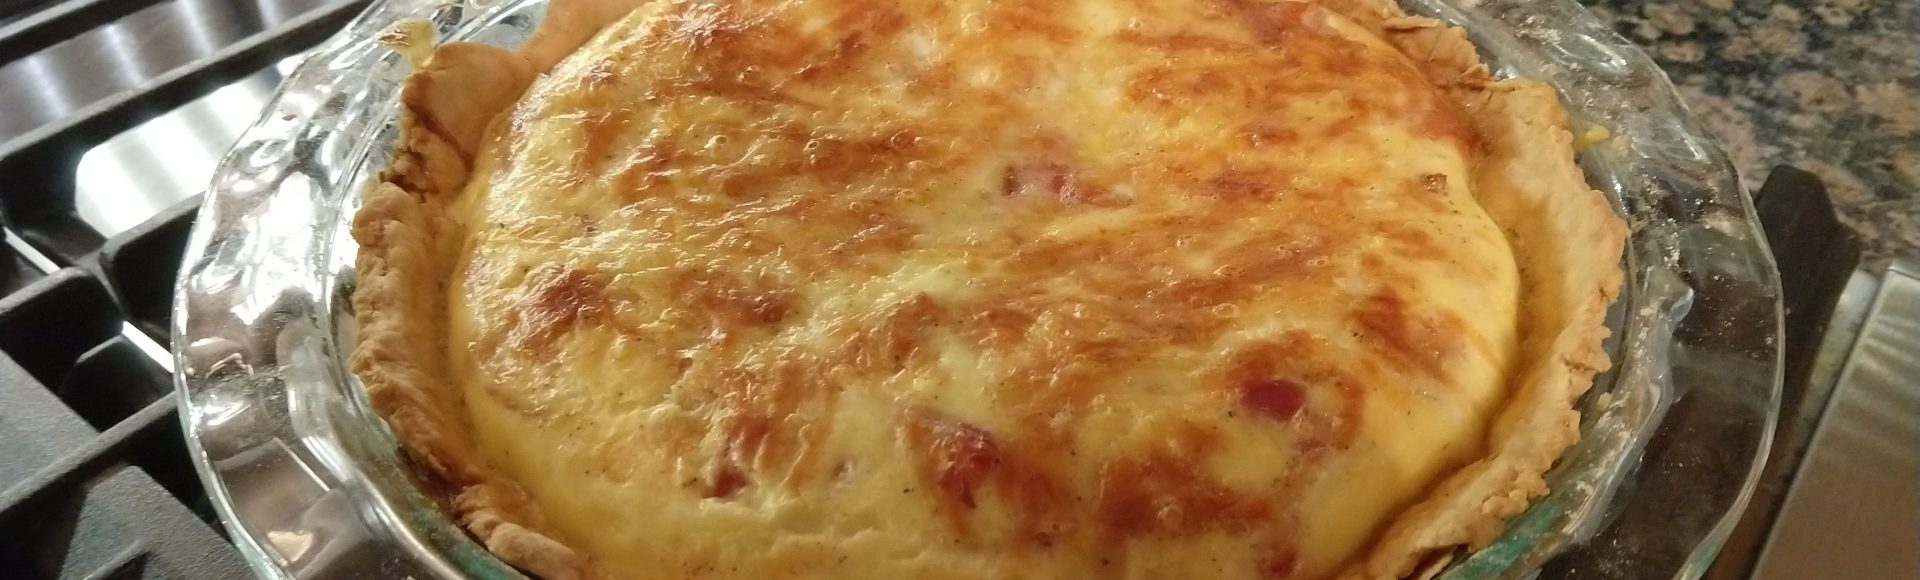 A Taste of France: Quiche Lorraine